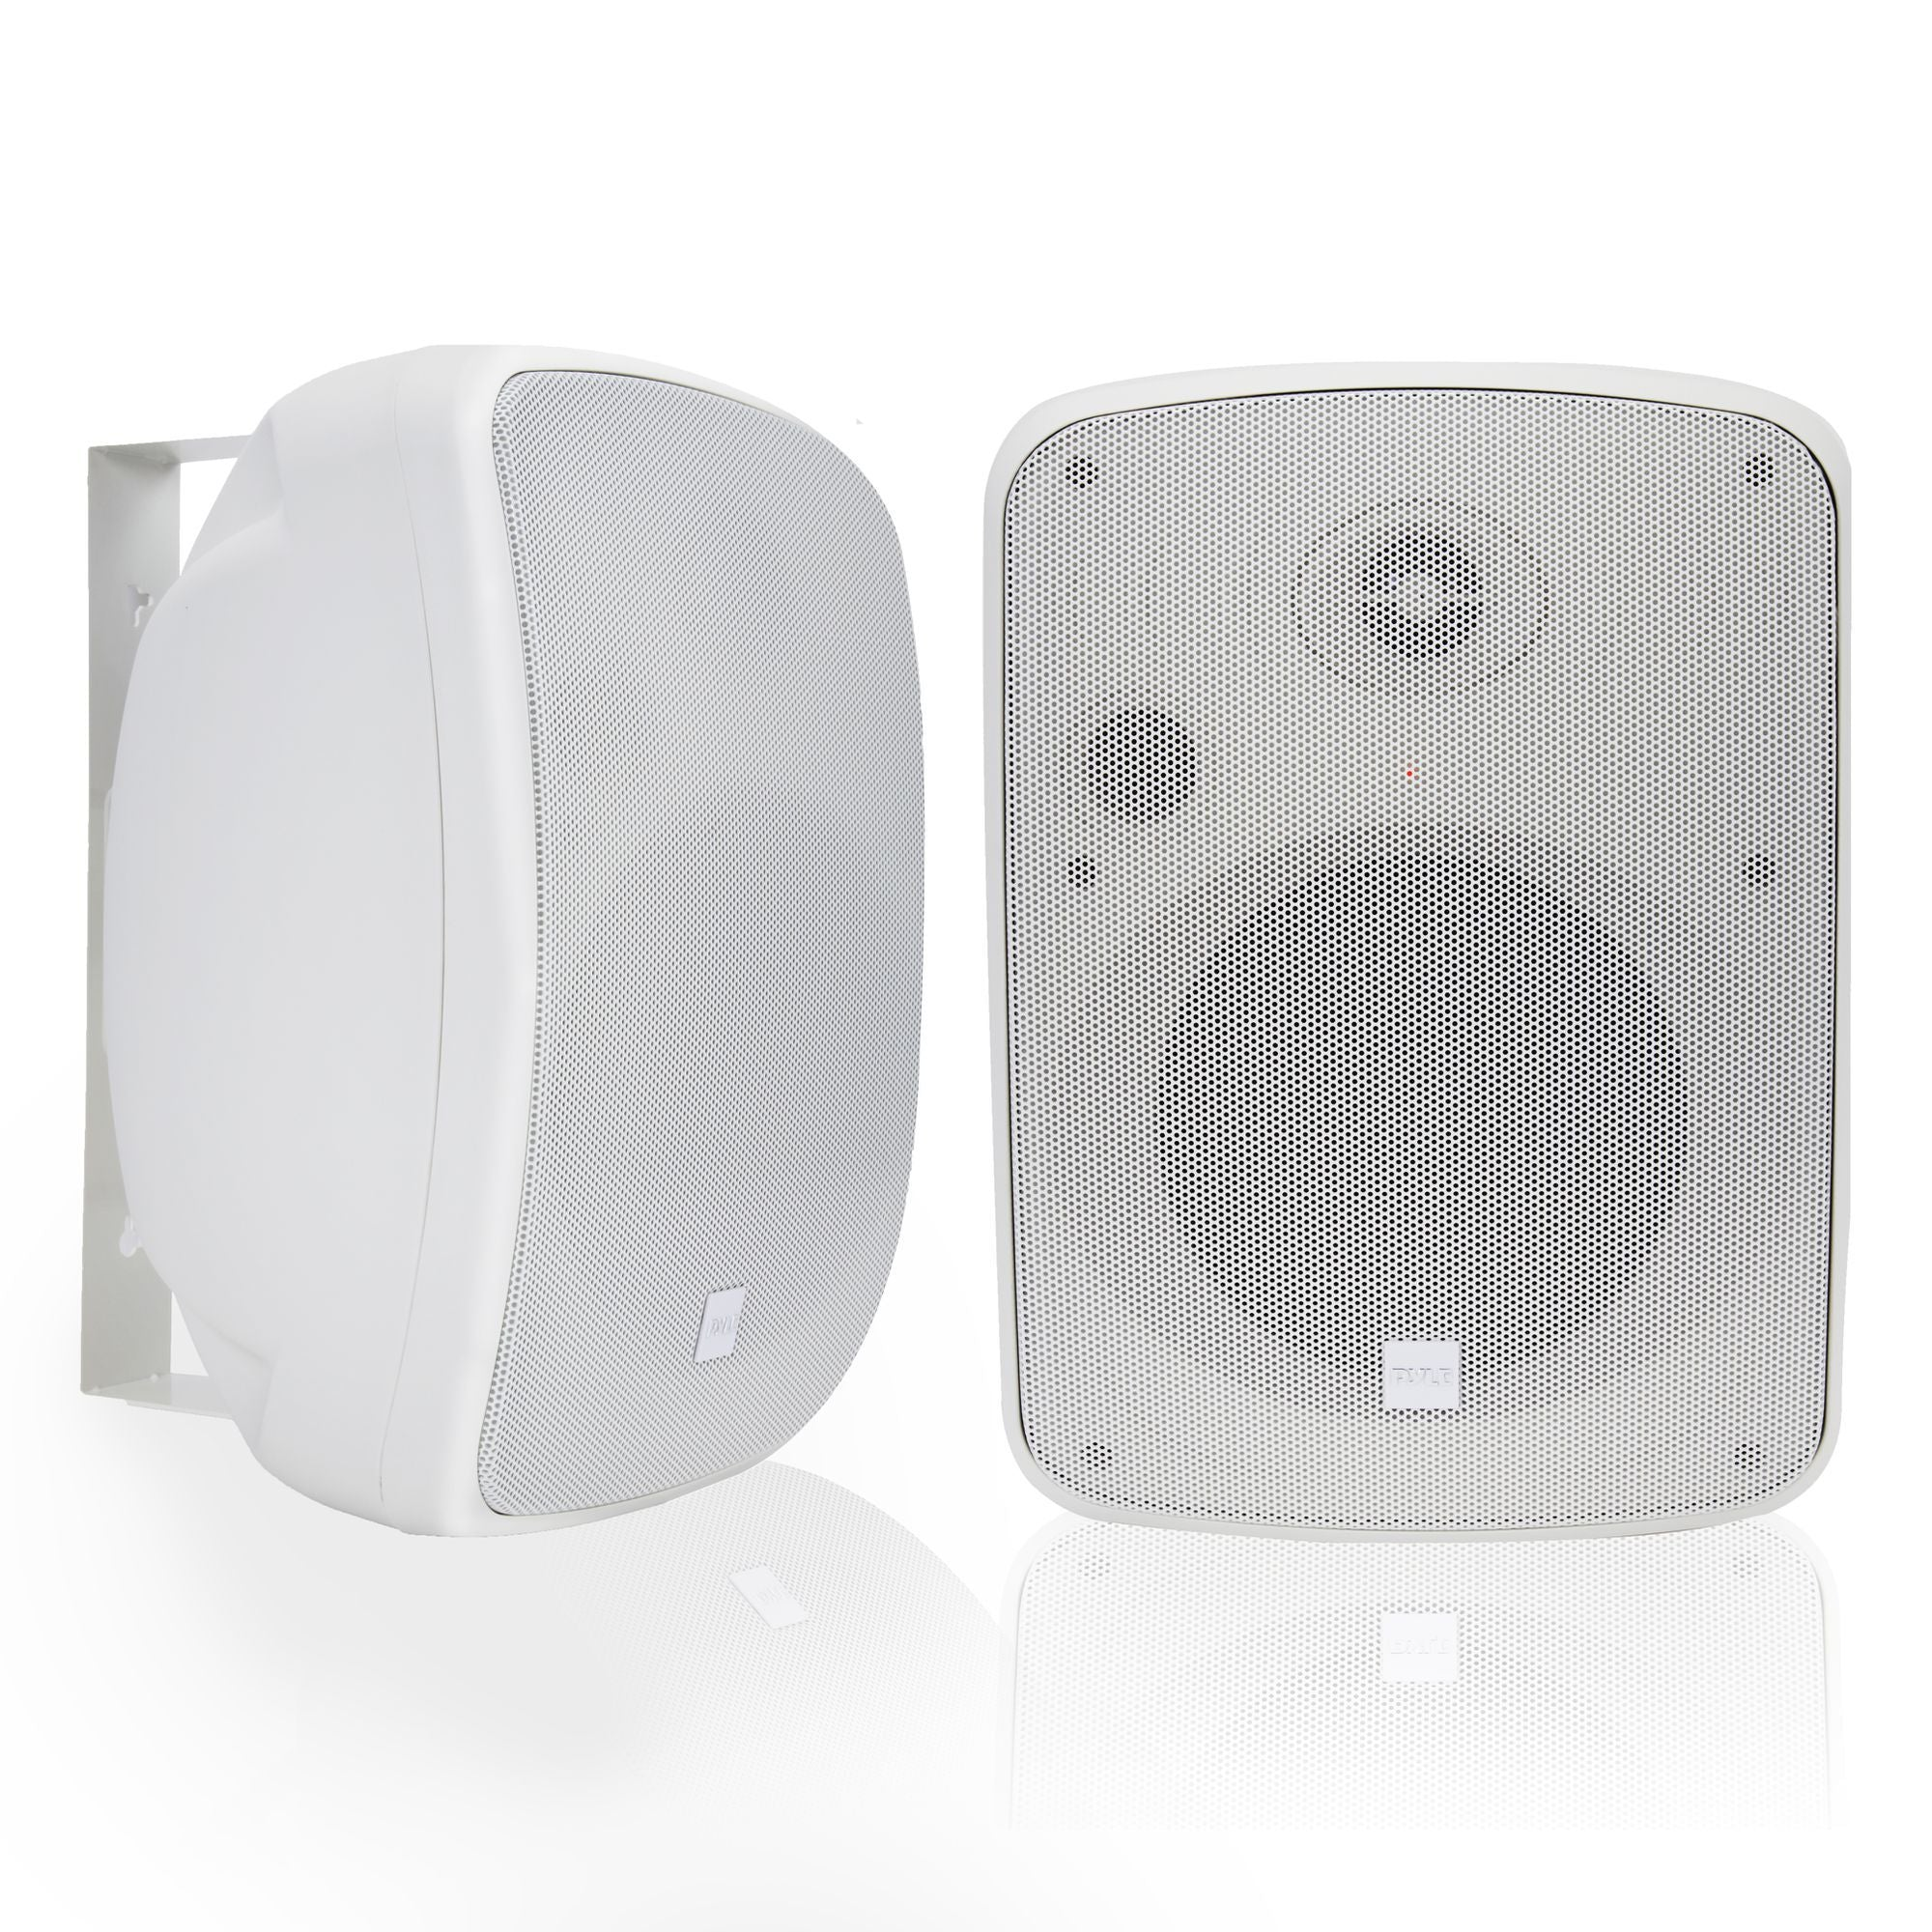 Pyle Pair of Bluetooth 6.5'' Wall-Mount Speakers, Waterproof, 2-Way Stereo - White (PDWR65BTRFW)